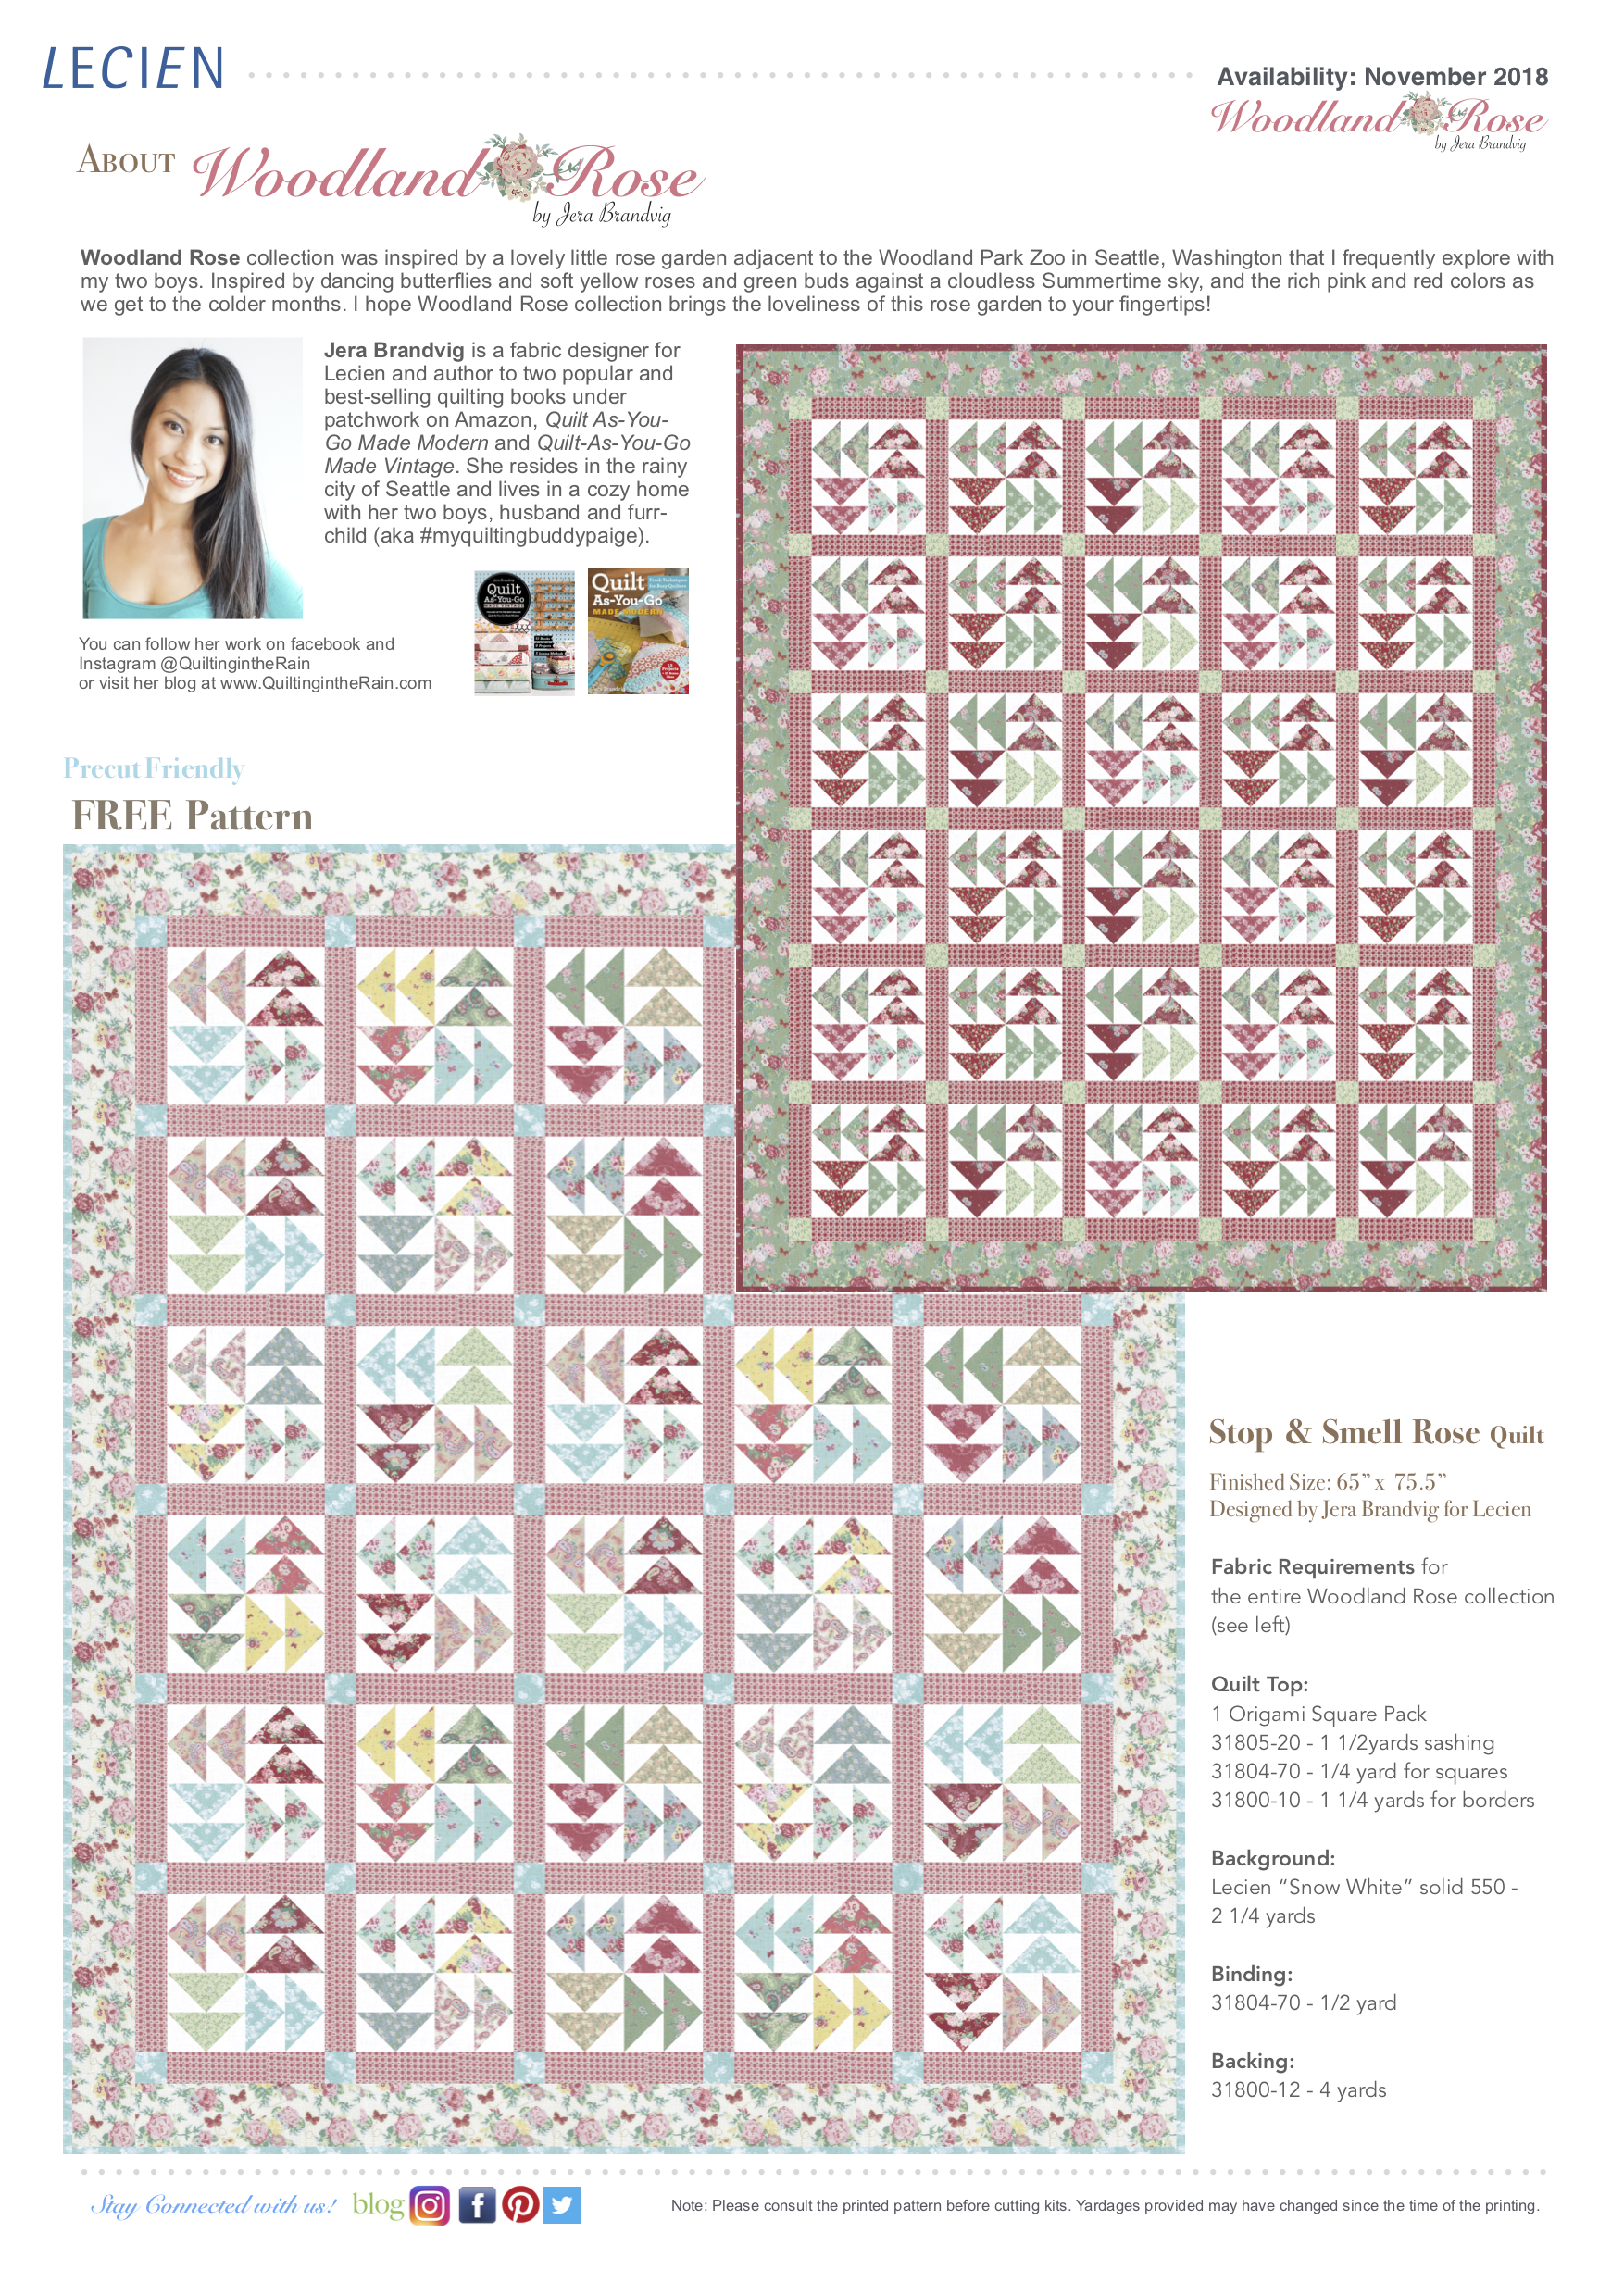 Stop & Smell Rose Quilt - featuring Woodland Rose Collection by Jera Brandvig